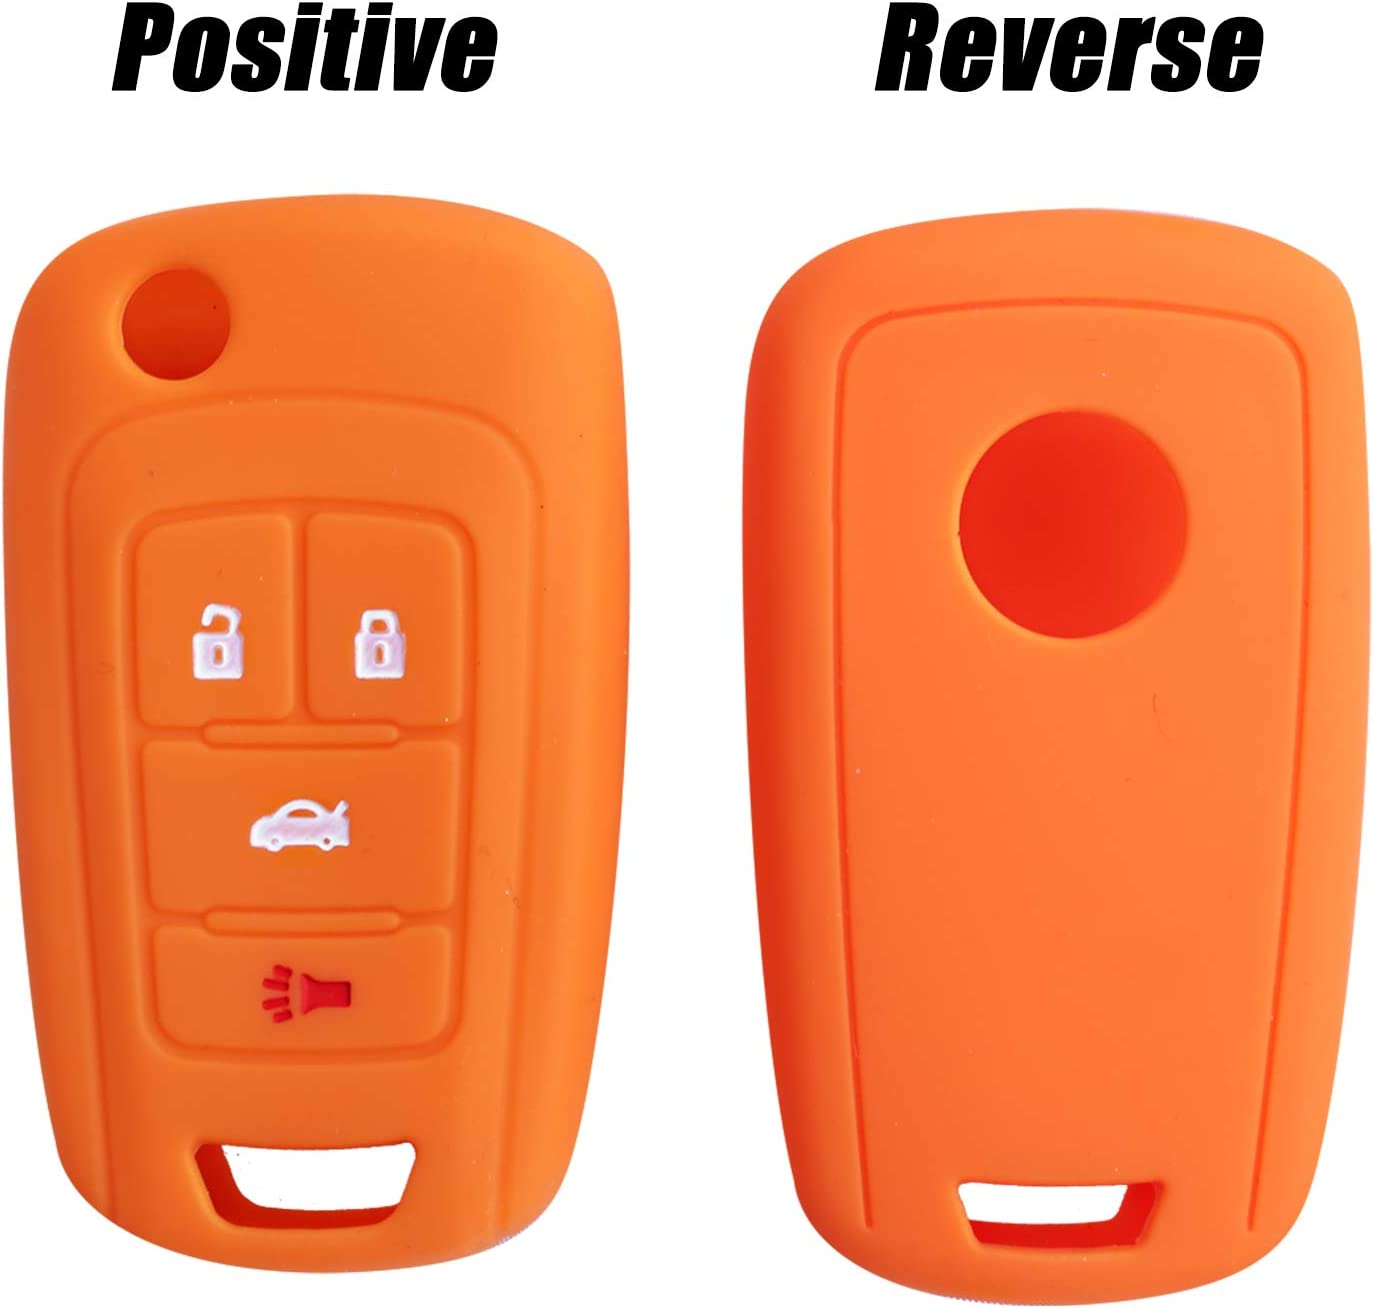 4 Buttons Remote Key Silicone Rubber Keyless Entry Shell Case Fob and Key Skin Cover fit for Chevrolet Camaro Cruze Volt Equinox Spark Malibu Sonic Buick for Opel YELLOW